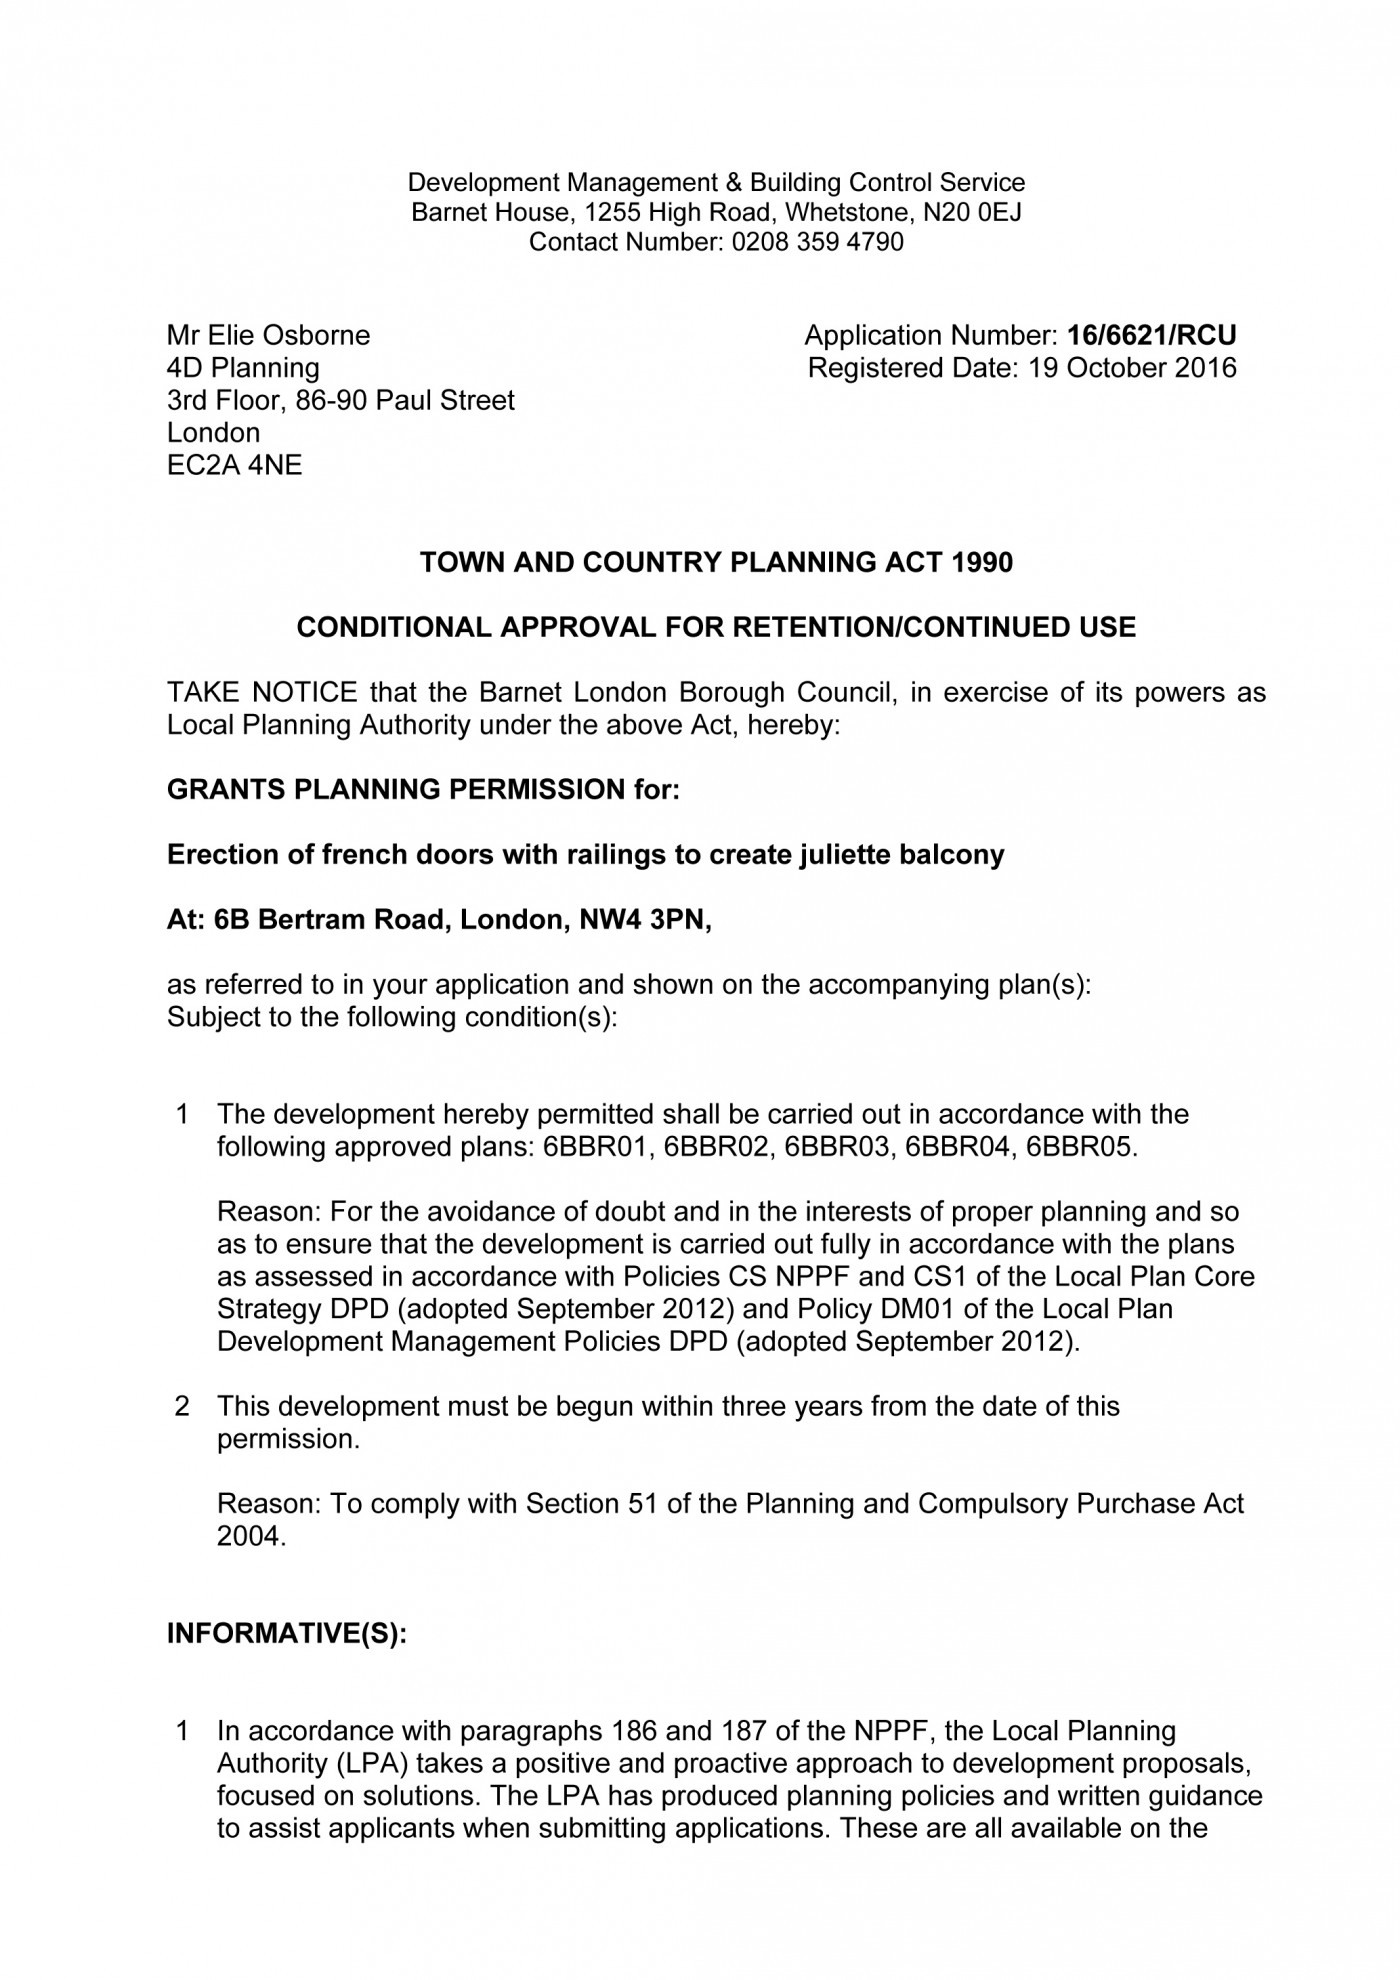 decision notice - Barnet Council